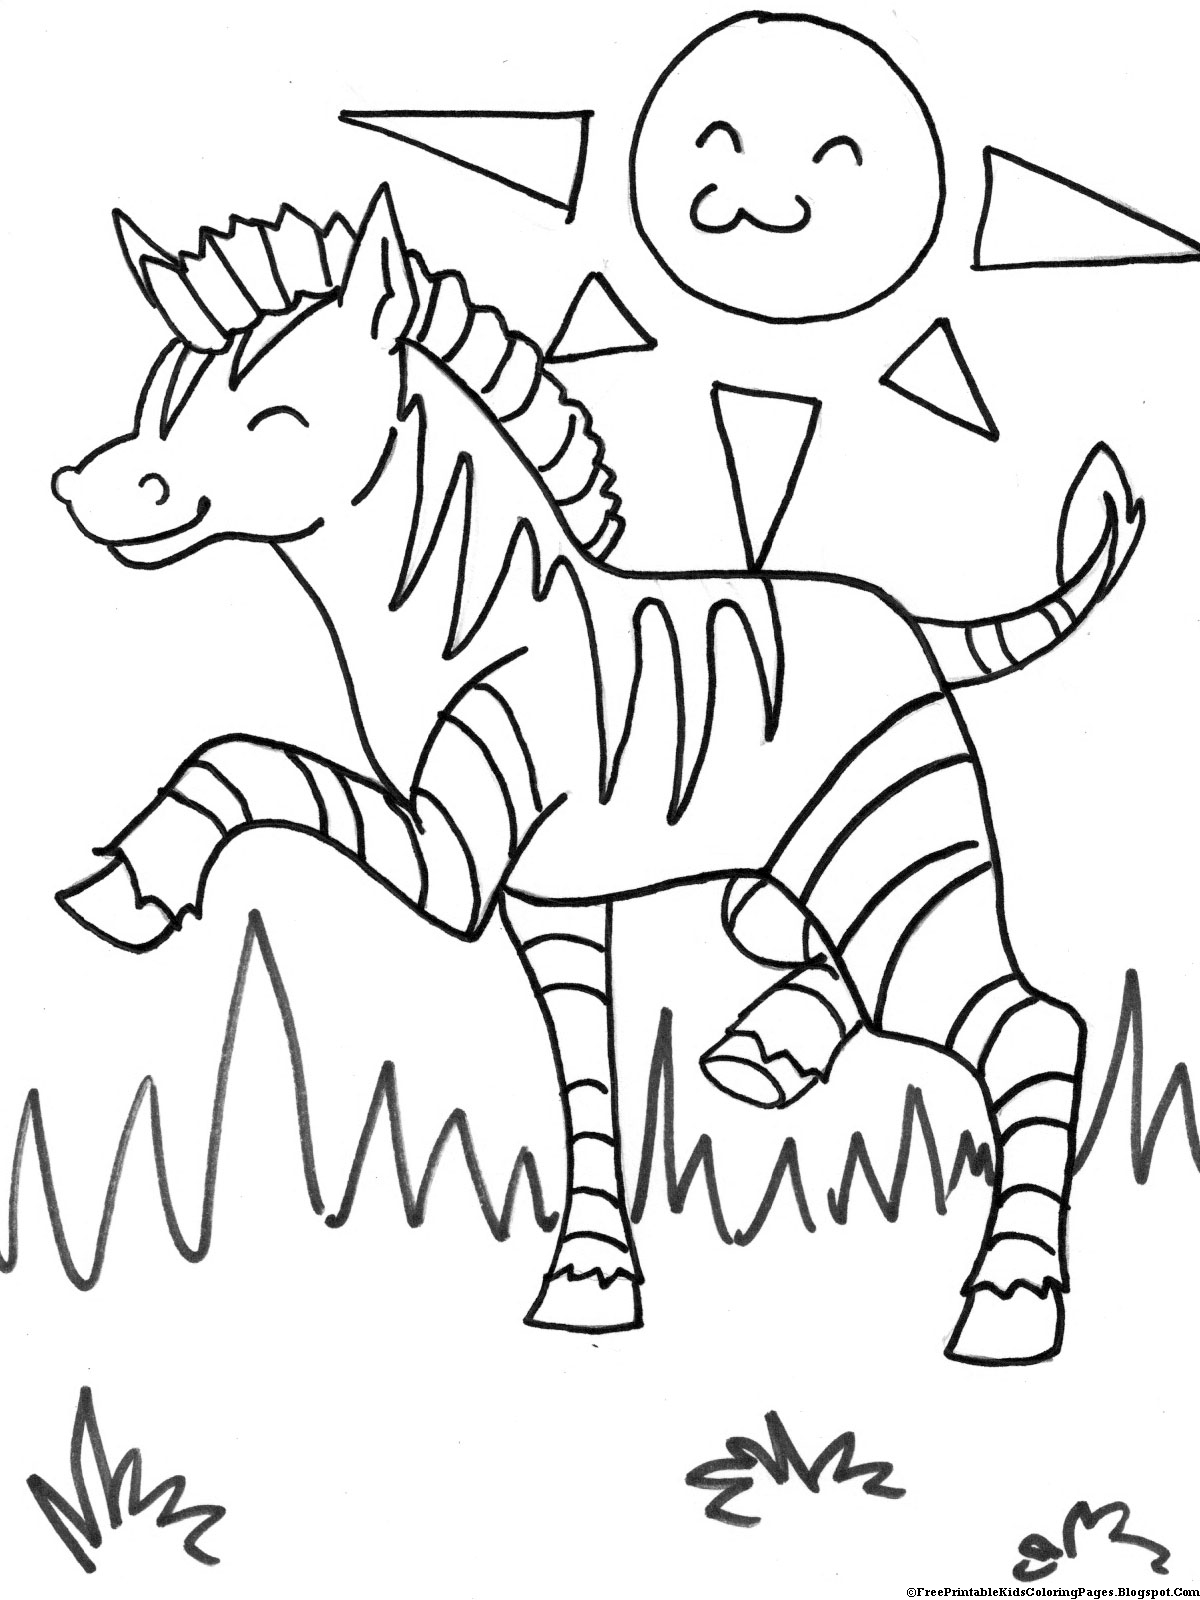 printable pages to color barney coloring pages color pages to printable